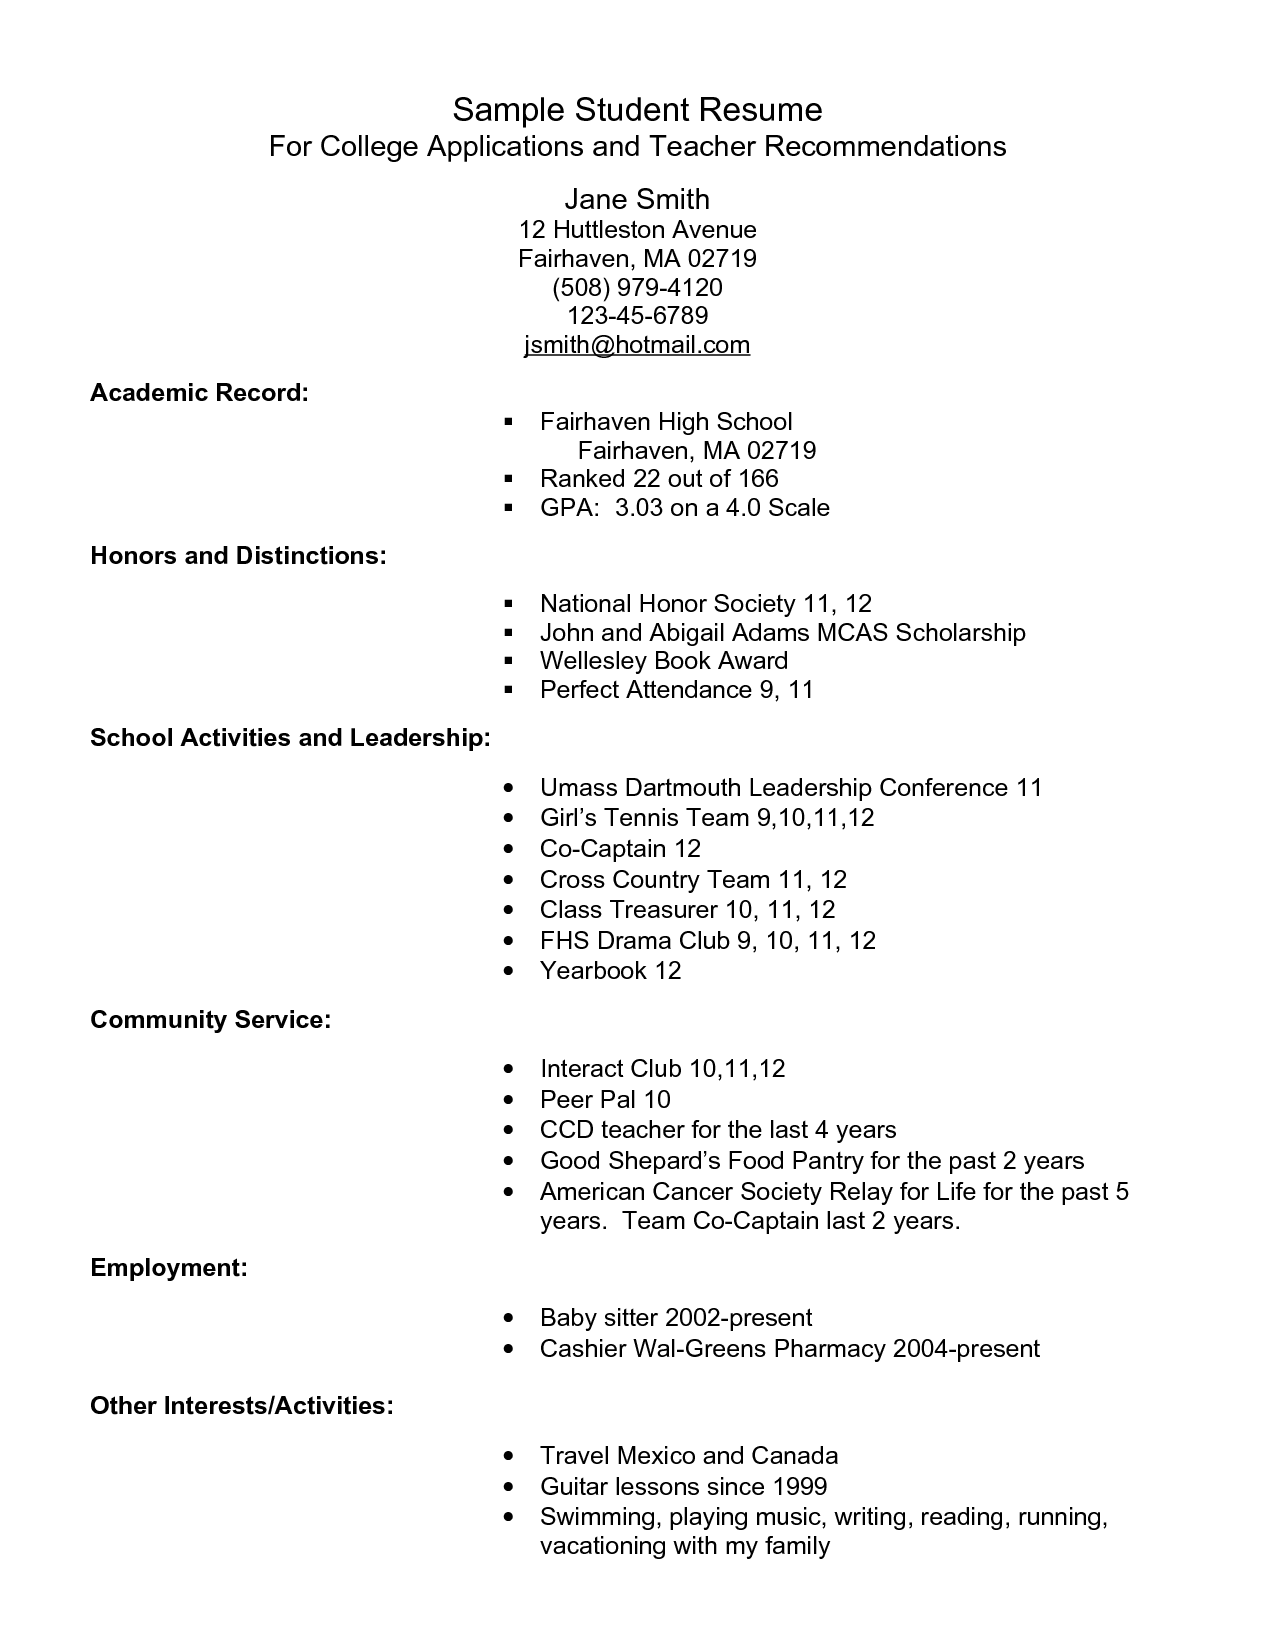 Resume College Admission Resume Objective Examples example resume for high school students college applications sample student pdf by smapdi59